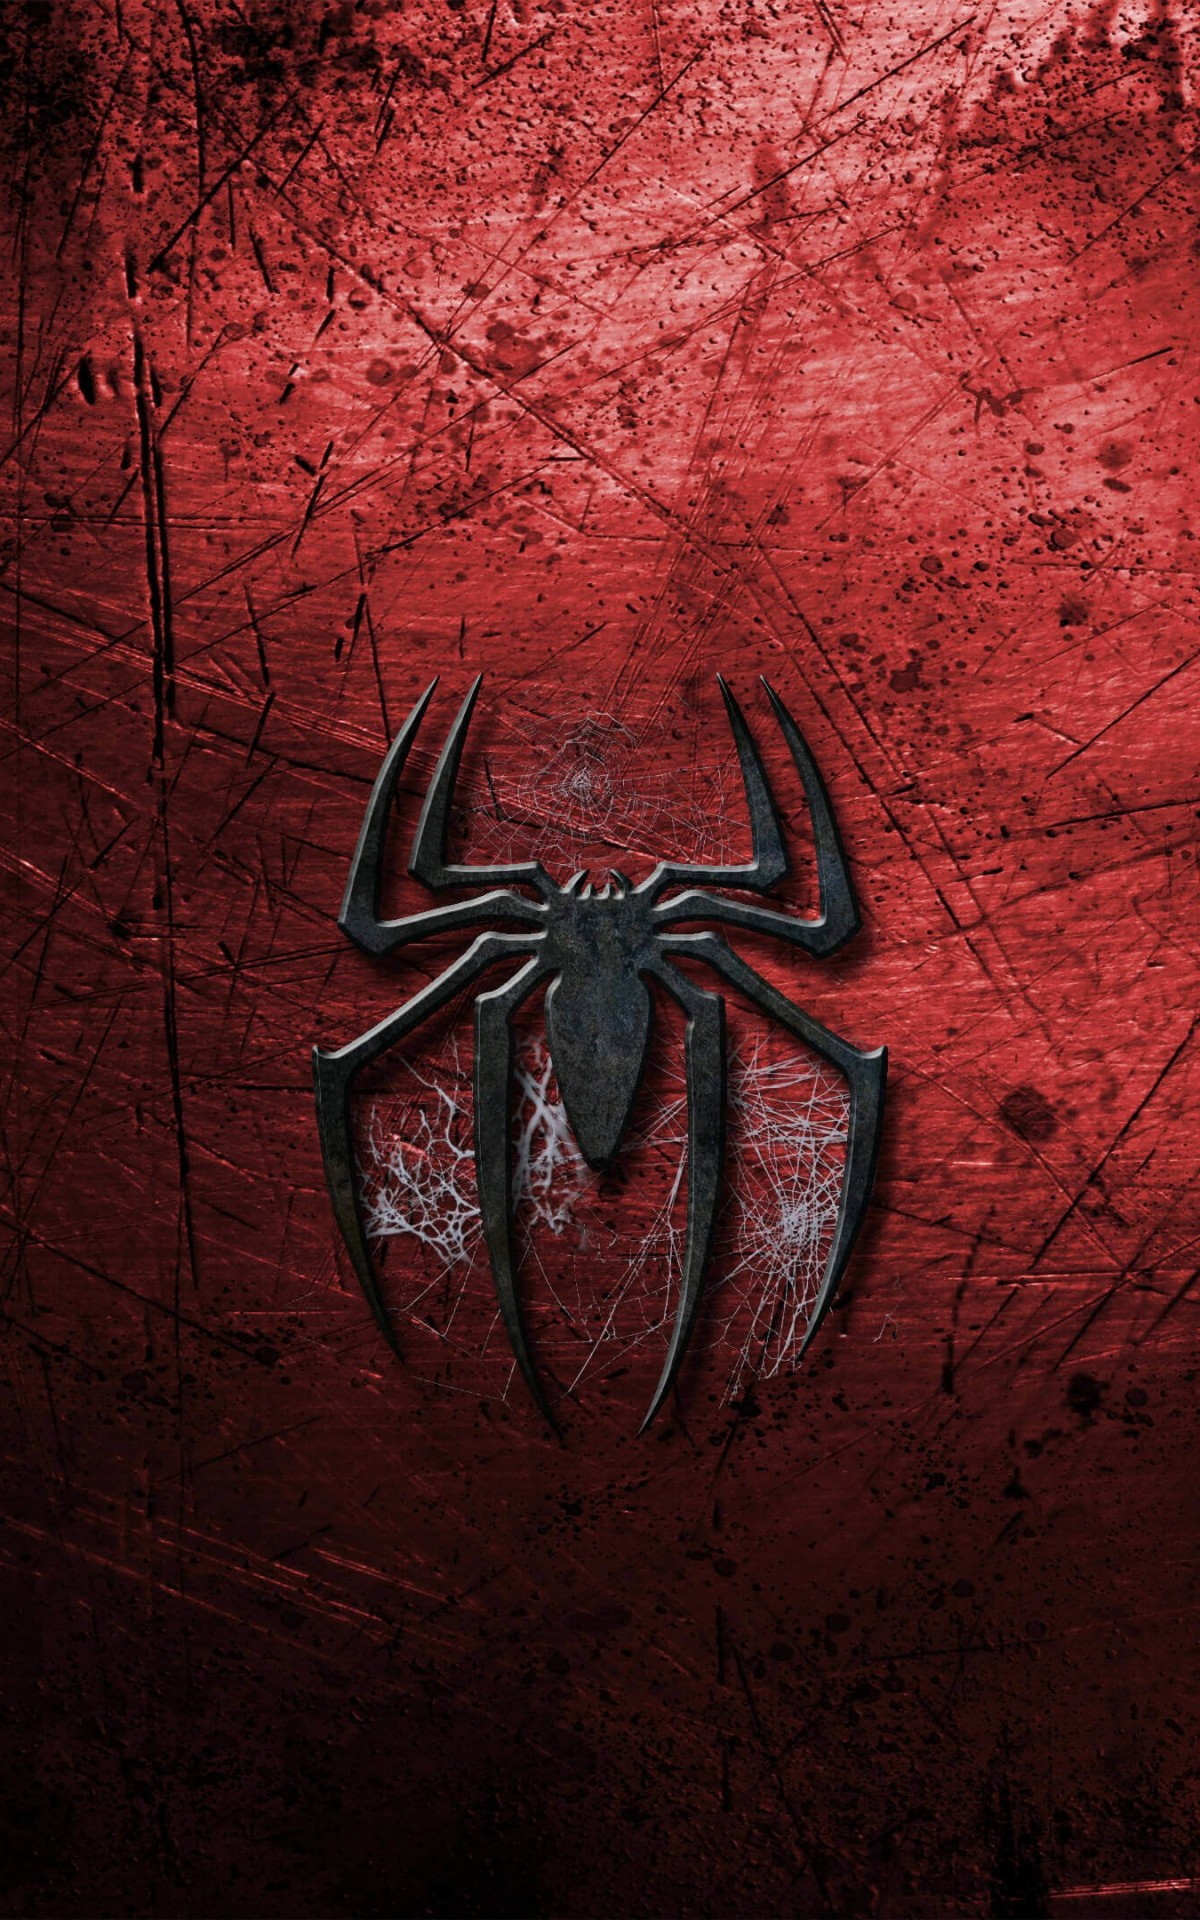 Grungy Spider-Man Logo Wallpaper for Amazon Kindle Fire HDX